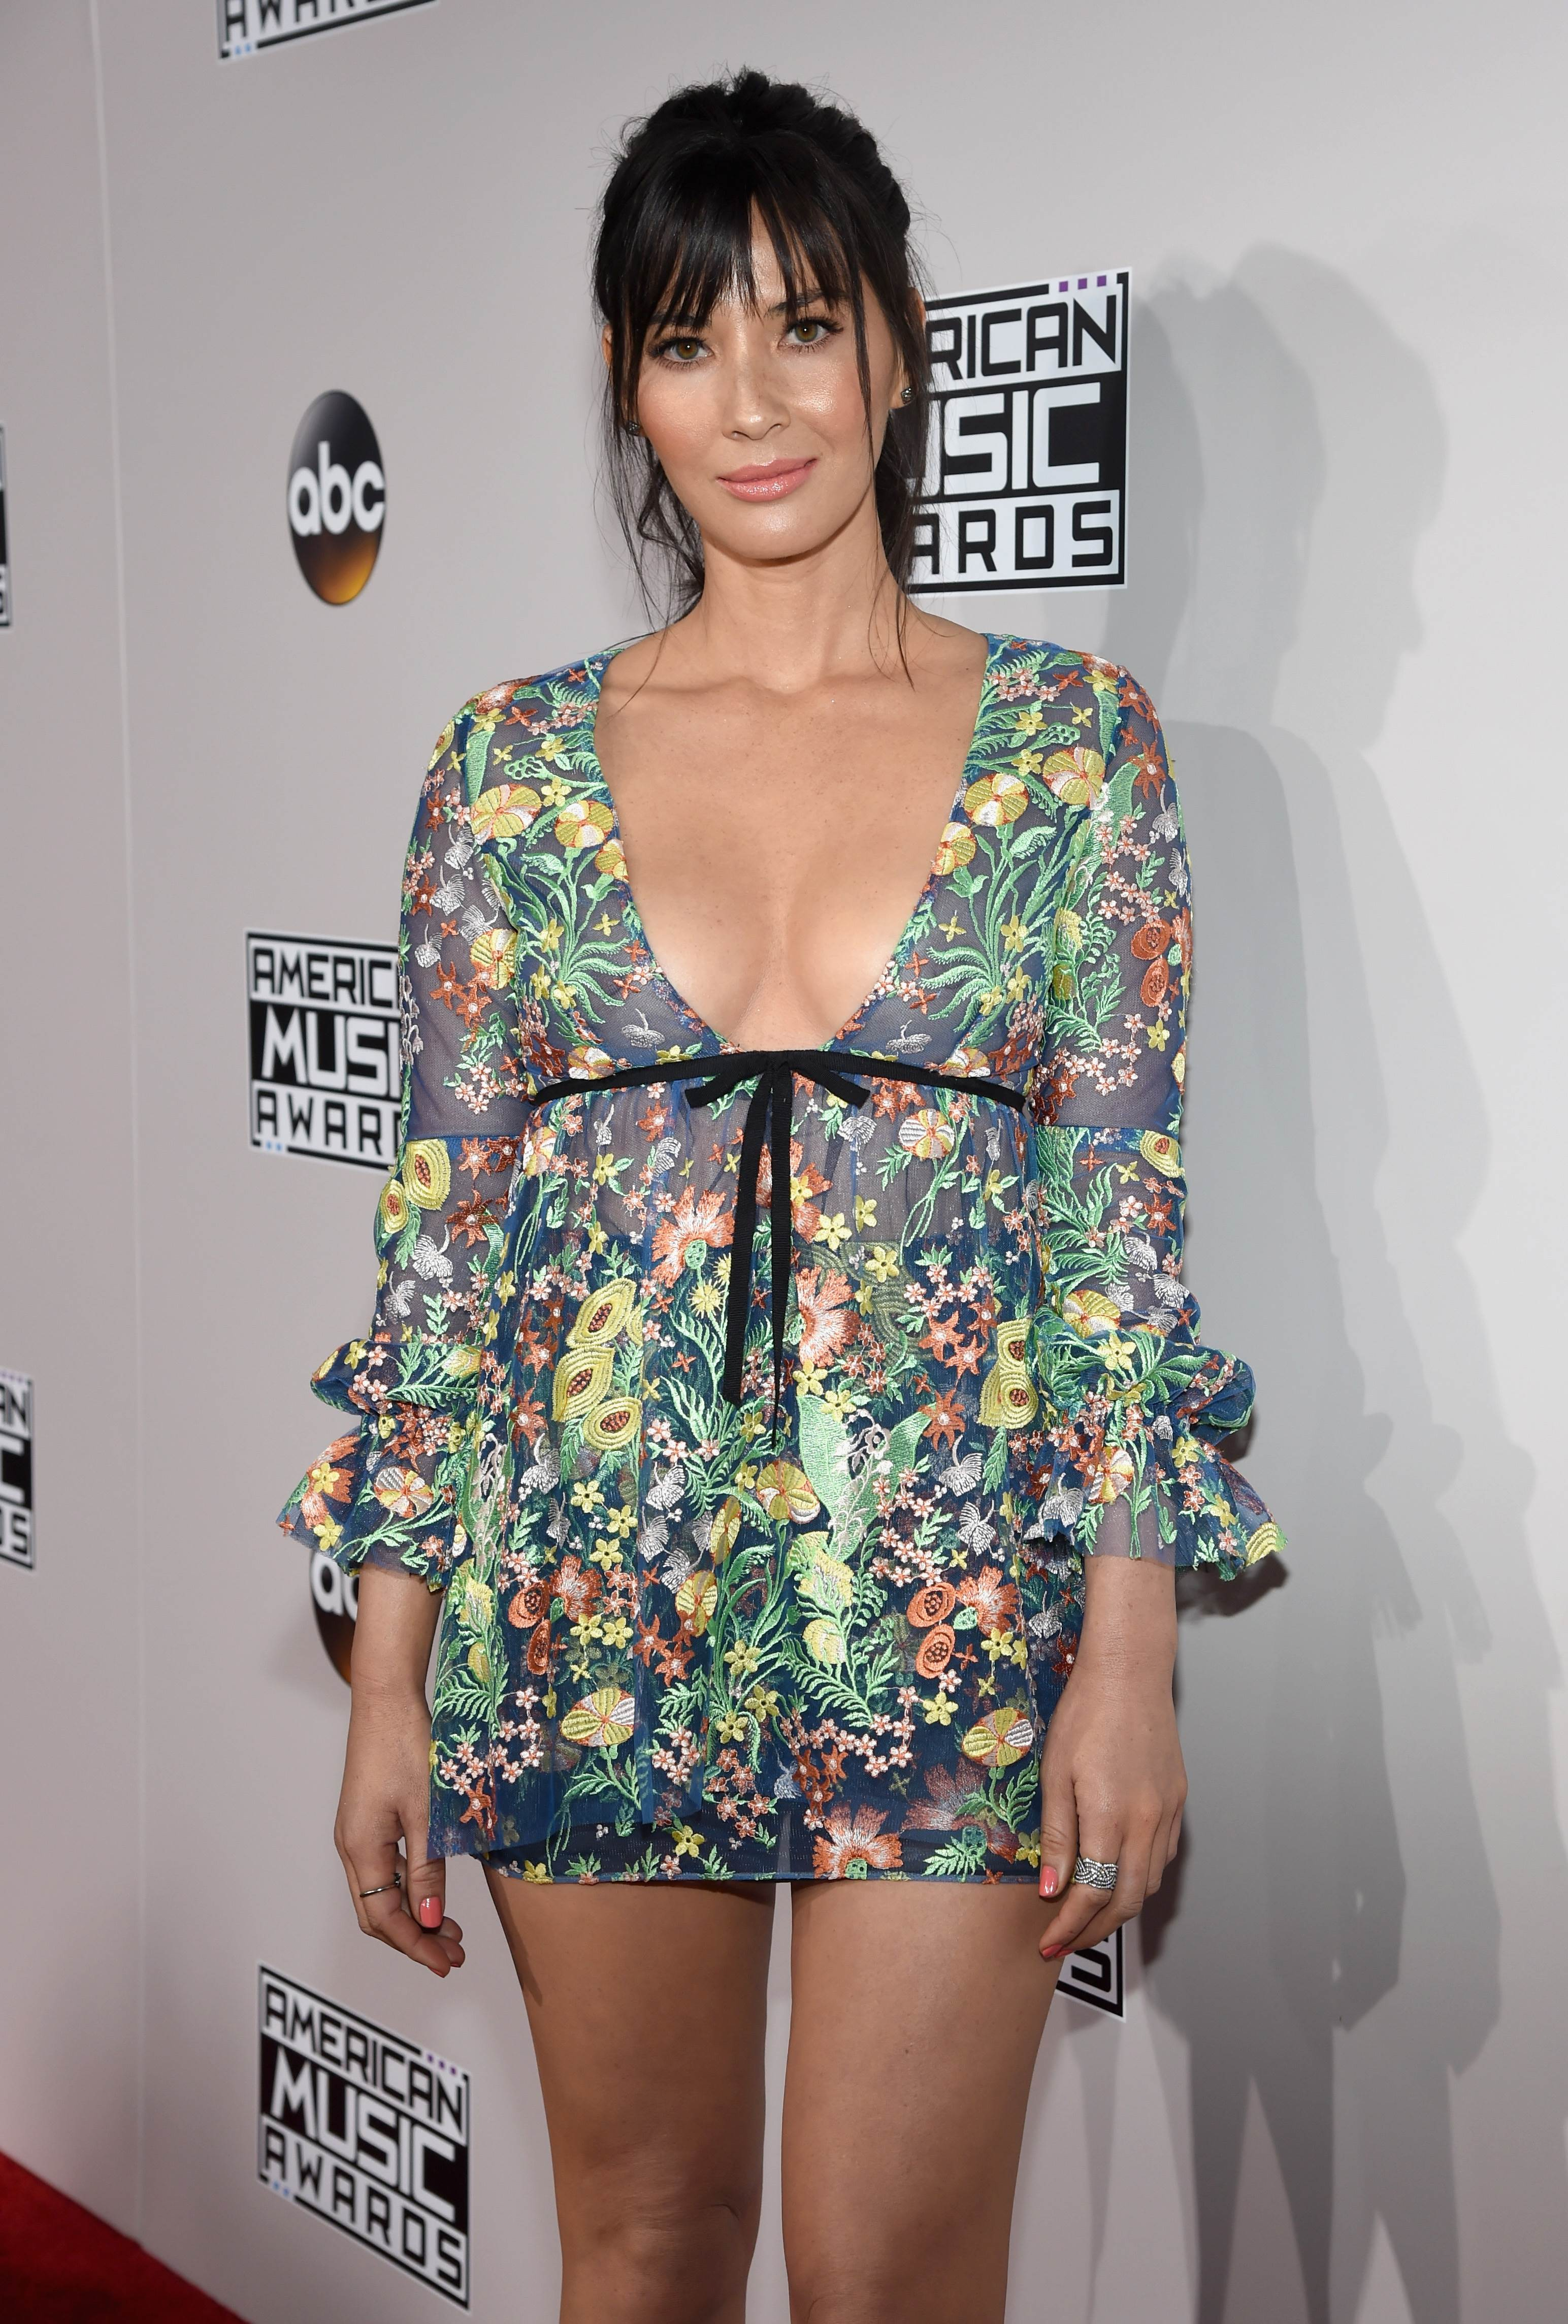 Celebrities show off lots of cleavage and legs at American